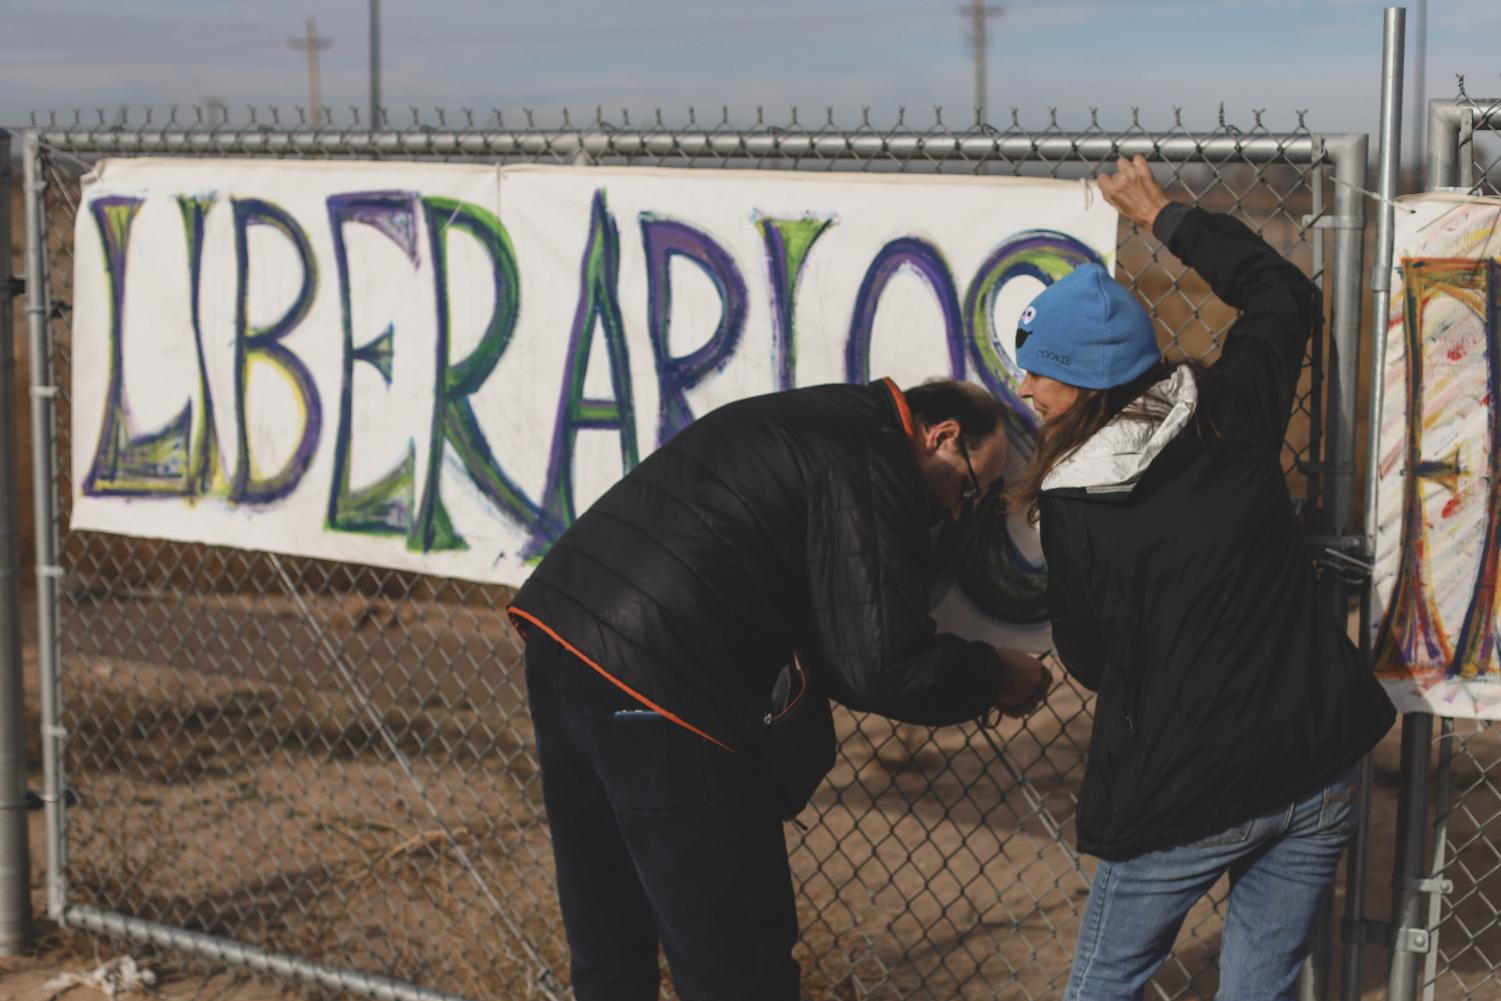 Signs+are+put+up+on+the+fence+to+show+the+kids+support+from+the+community.+